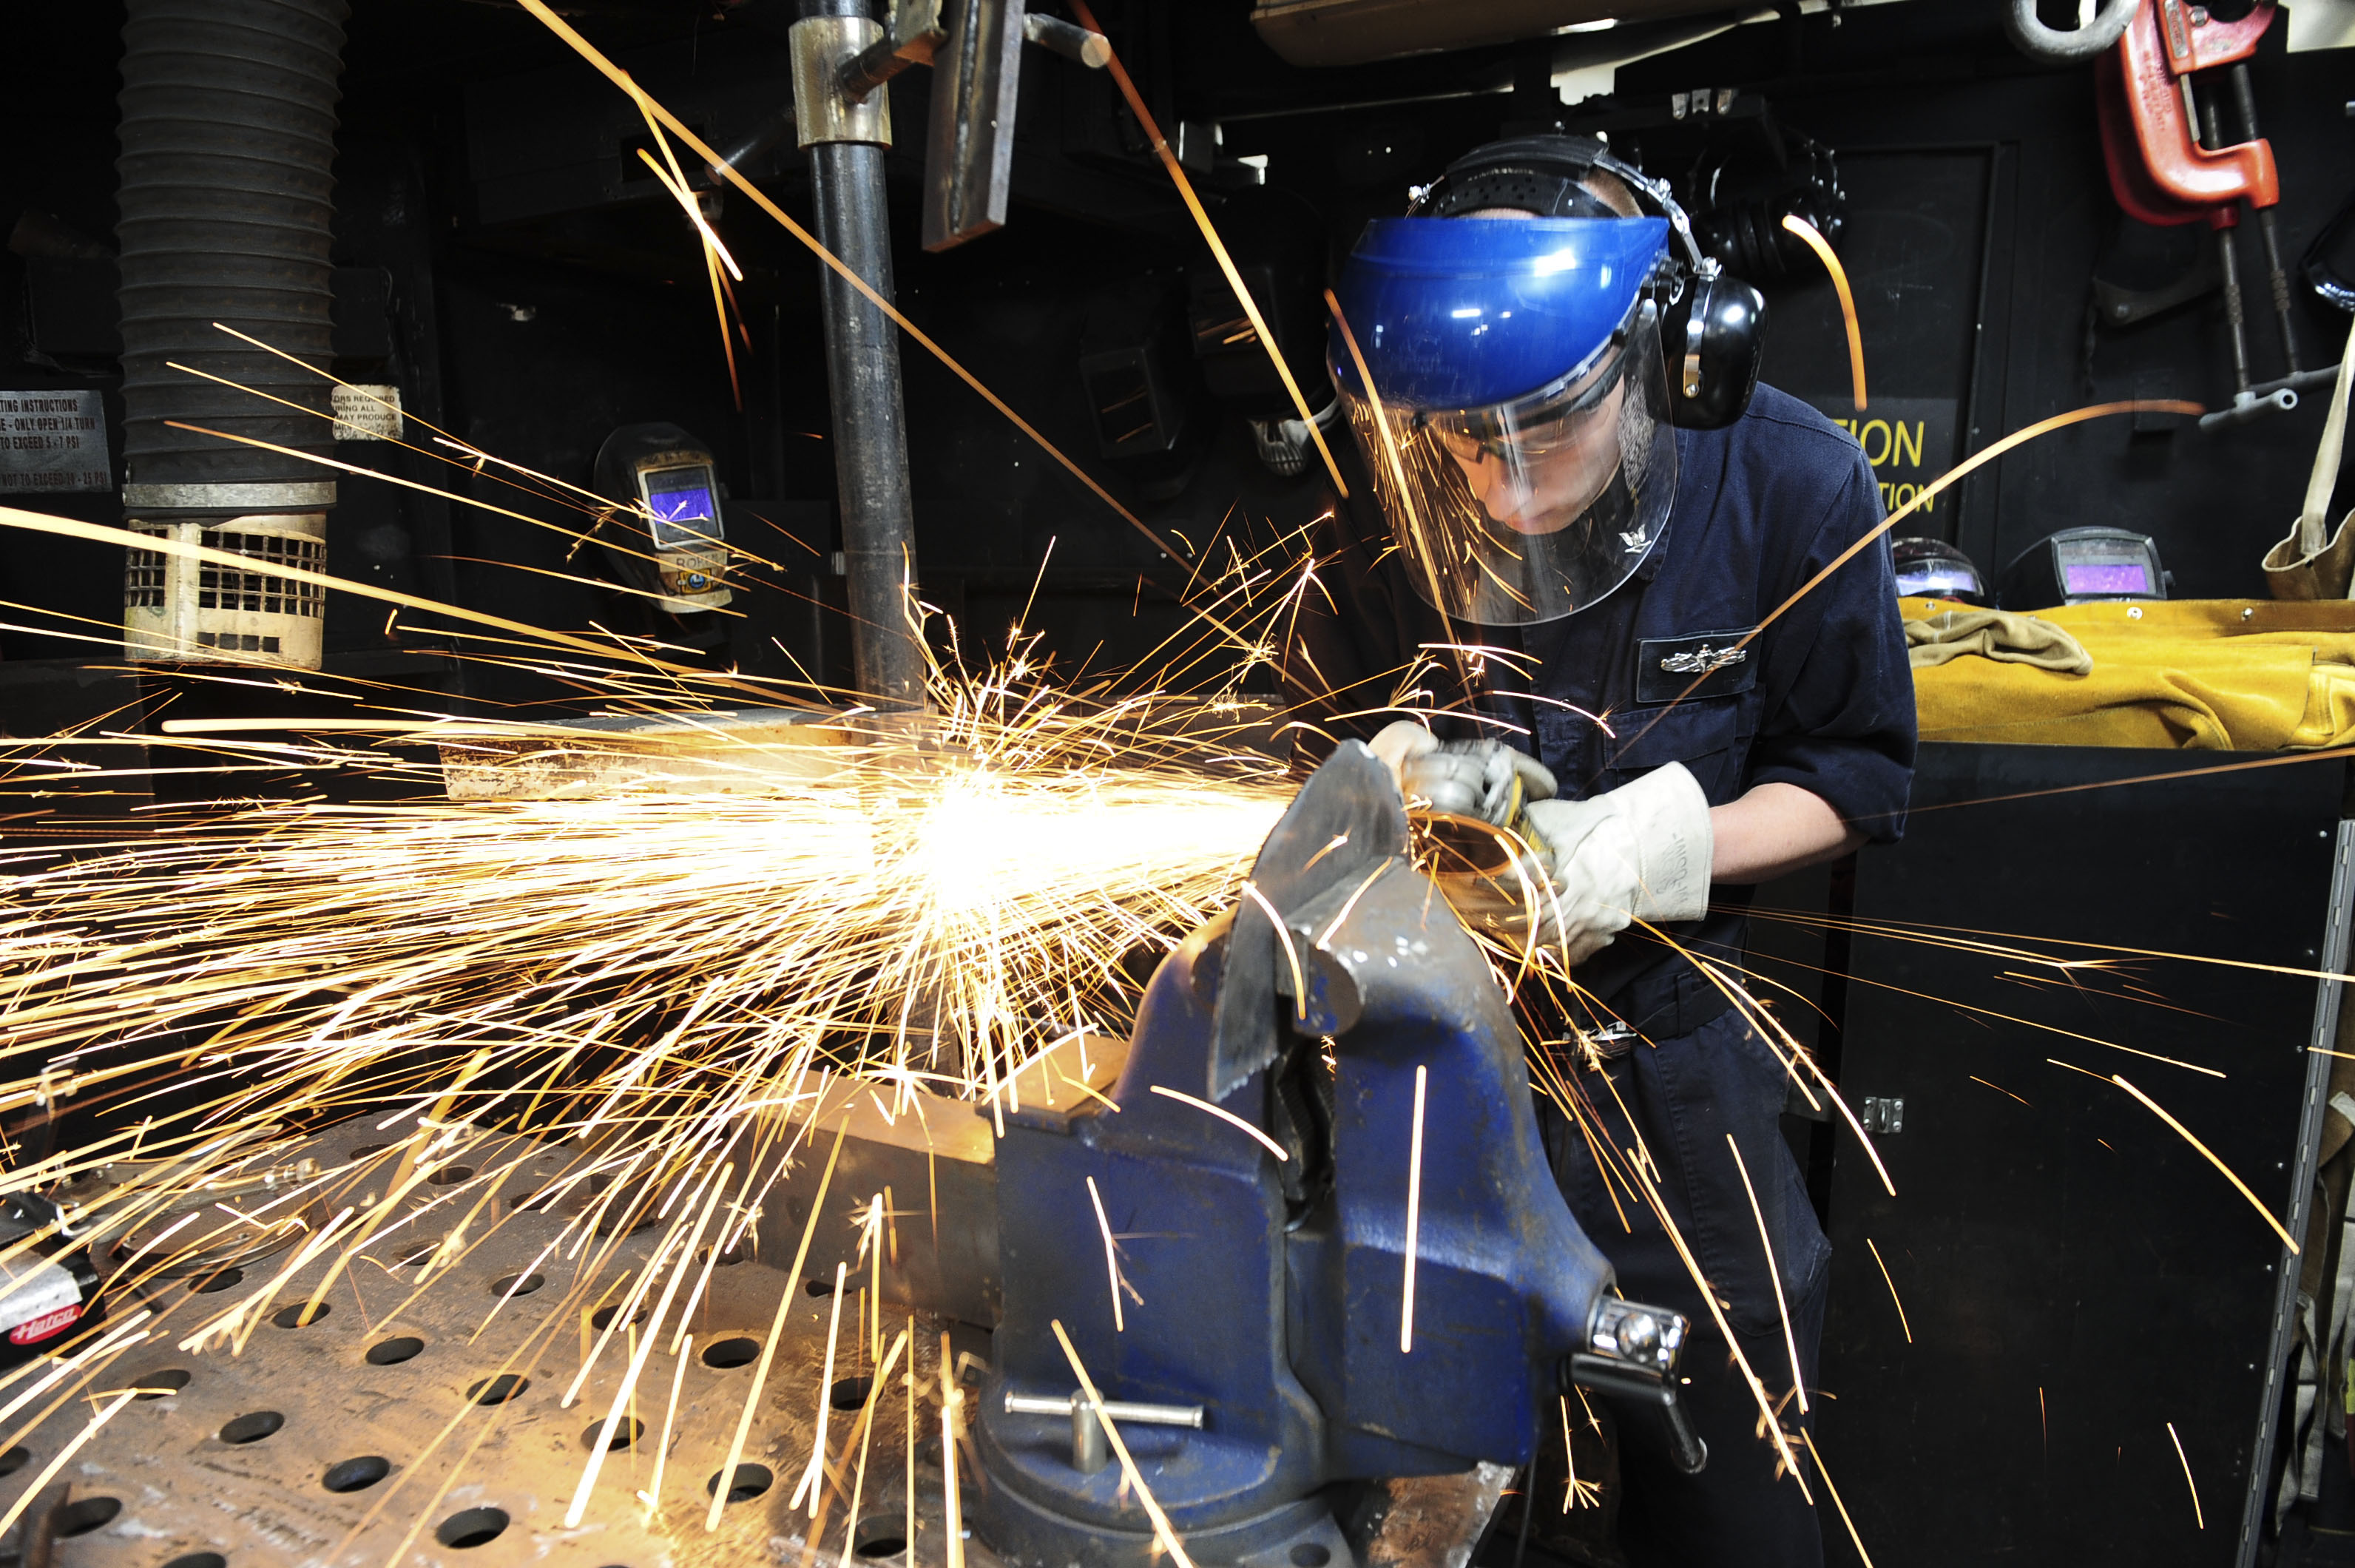 Free download high resolution image - free image free photo free stock image public domain picture -Welding work